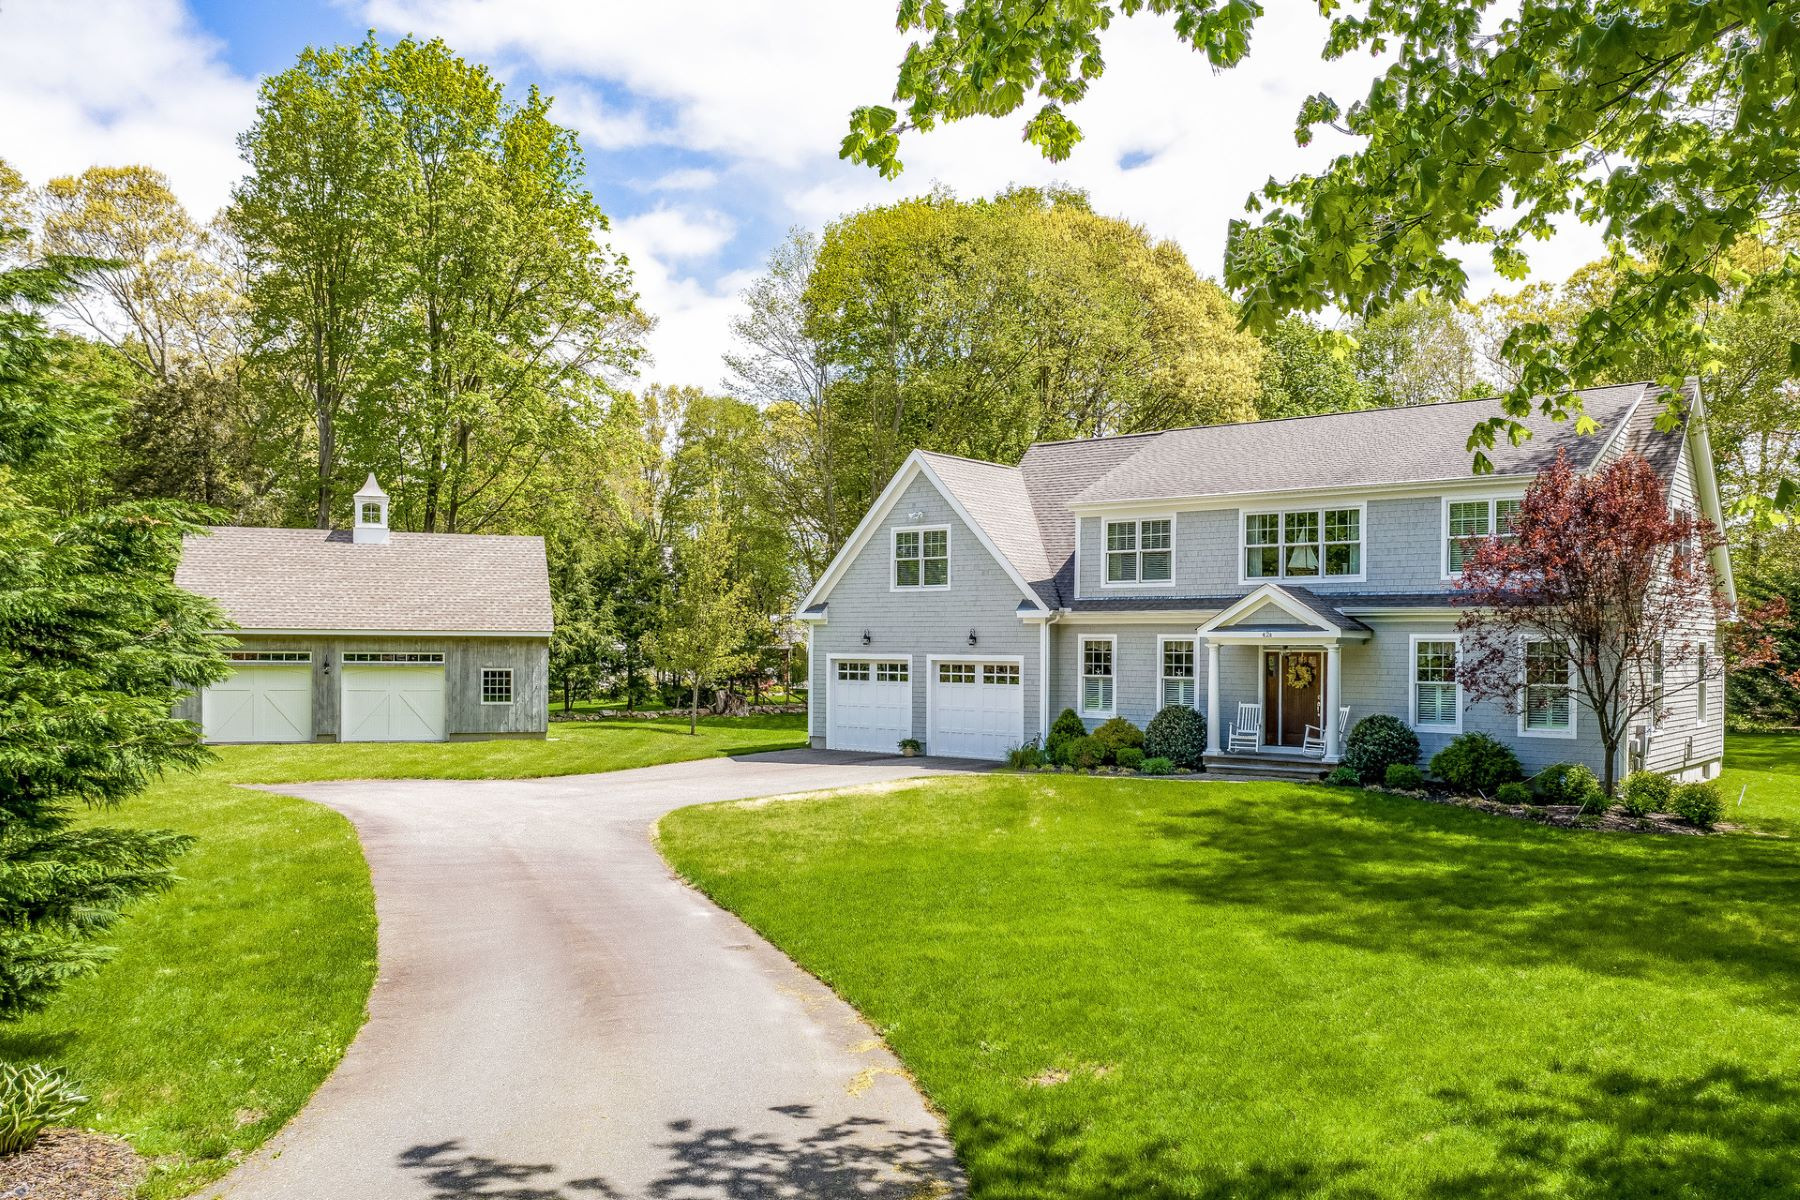 Single Family Homes for Sale at 42-b Waterside Lane Clinton, Connecticut 06413 United States